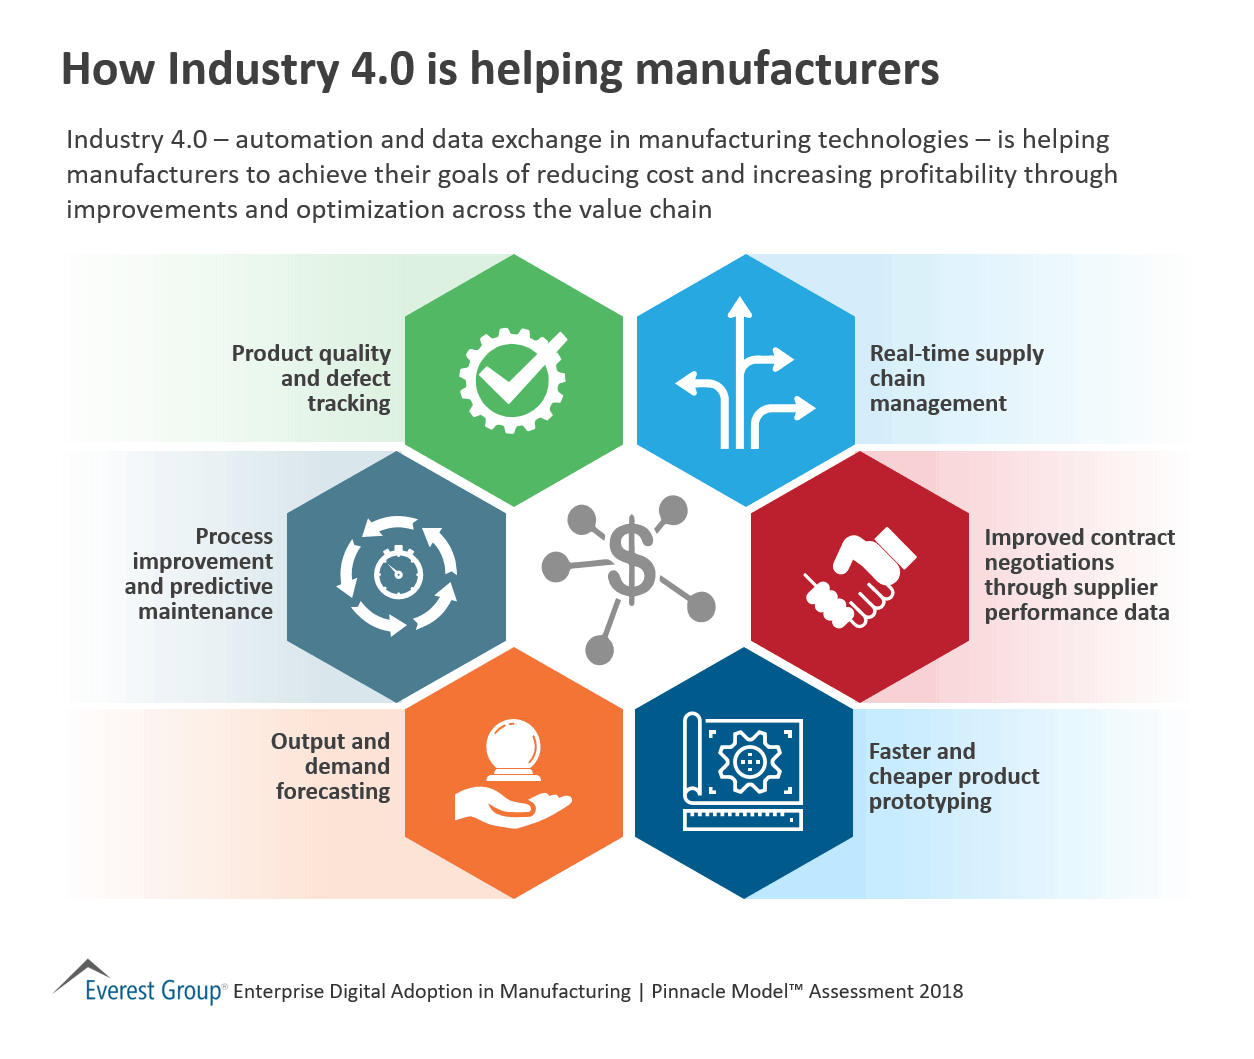 How Industry 4.0 is helping manufacturers